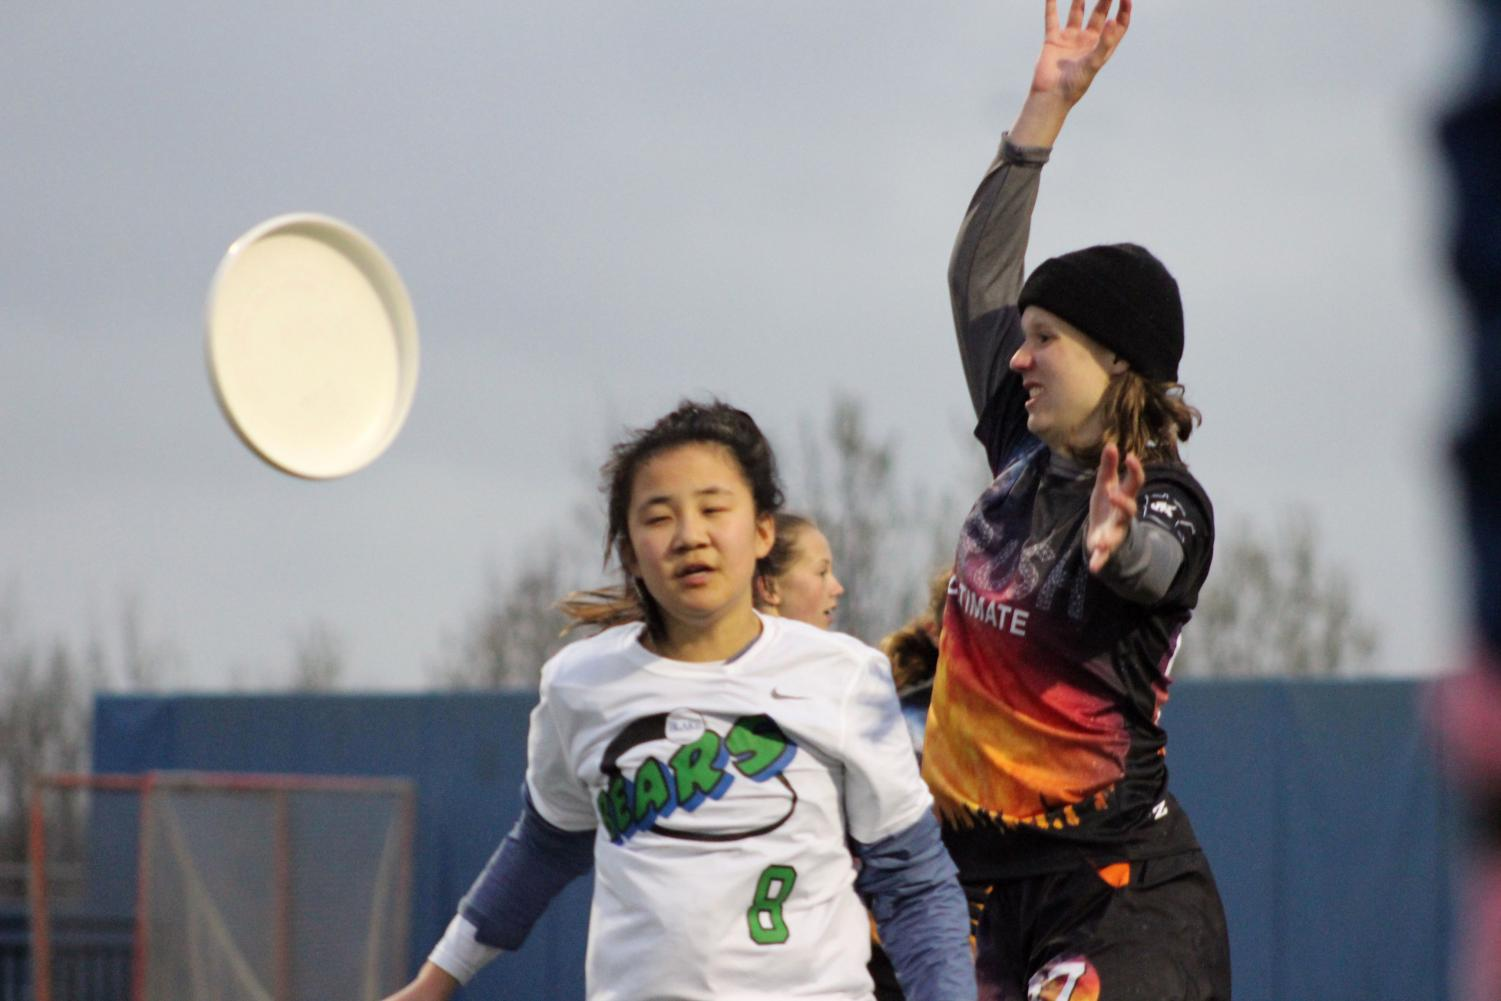 Junior Svea Bleske jumps to block a Blake player from catching the disc. Girls' Crush ultimate won the game against Blake 9-8 April 30.